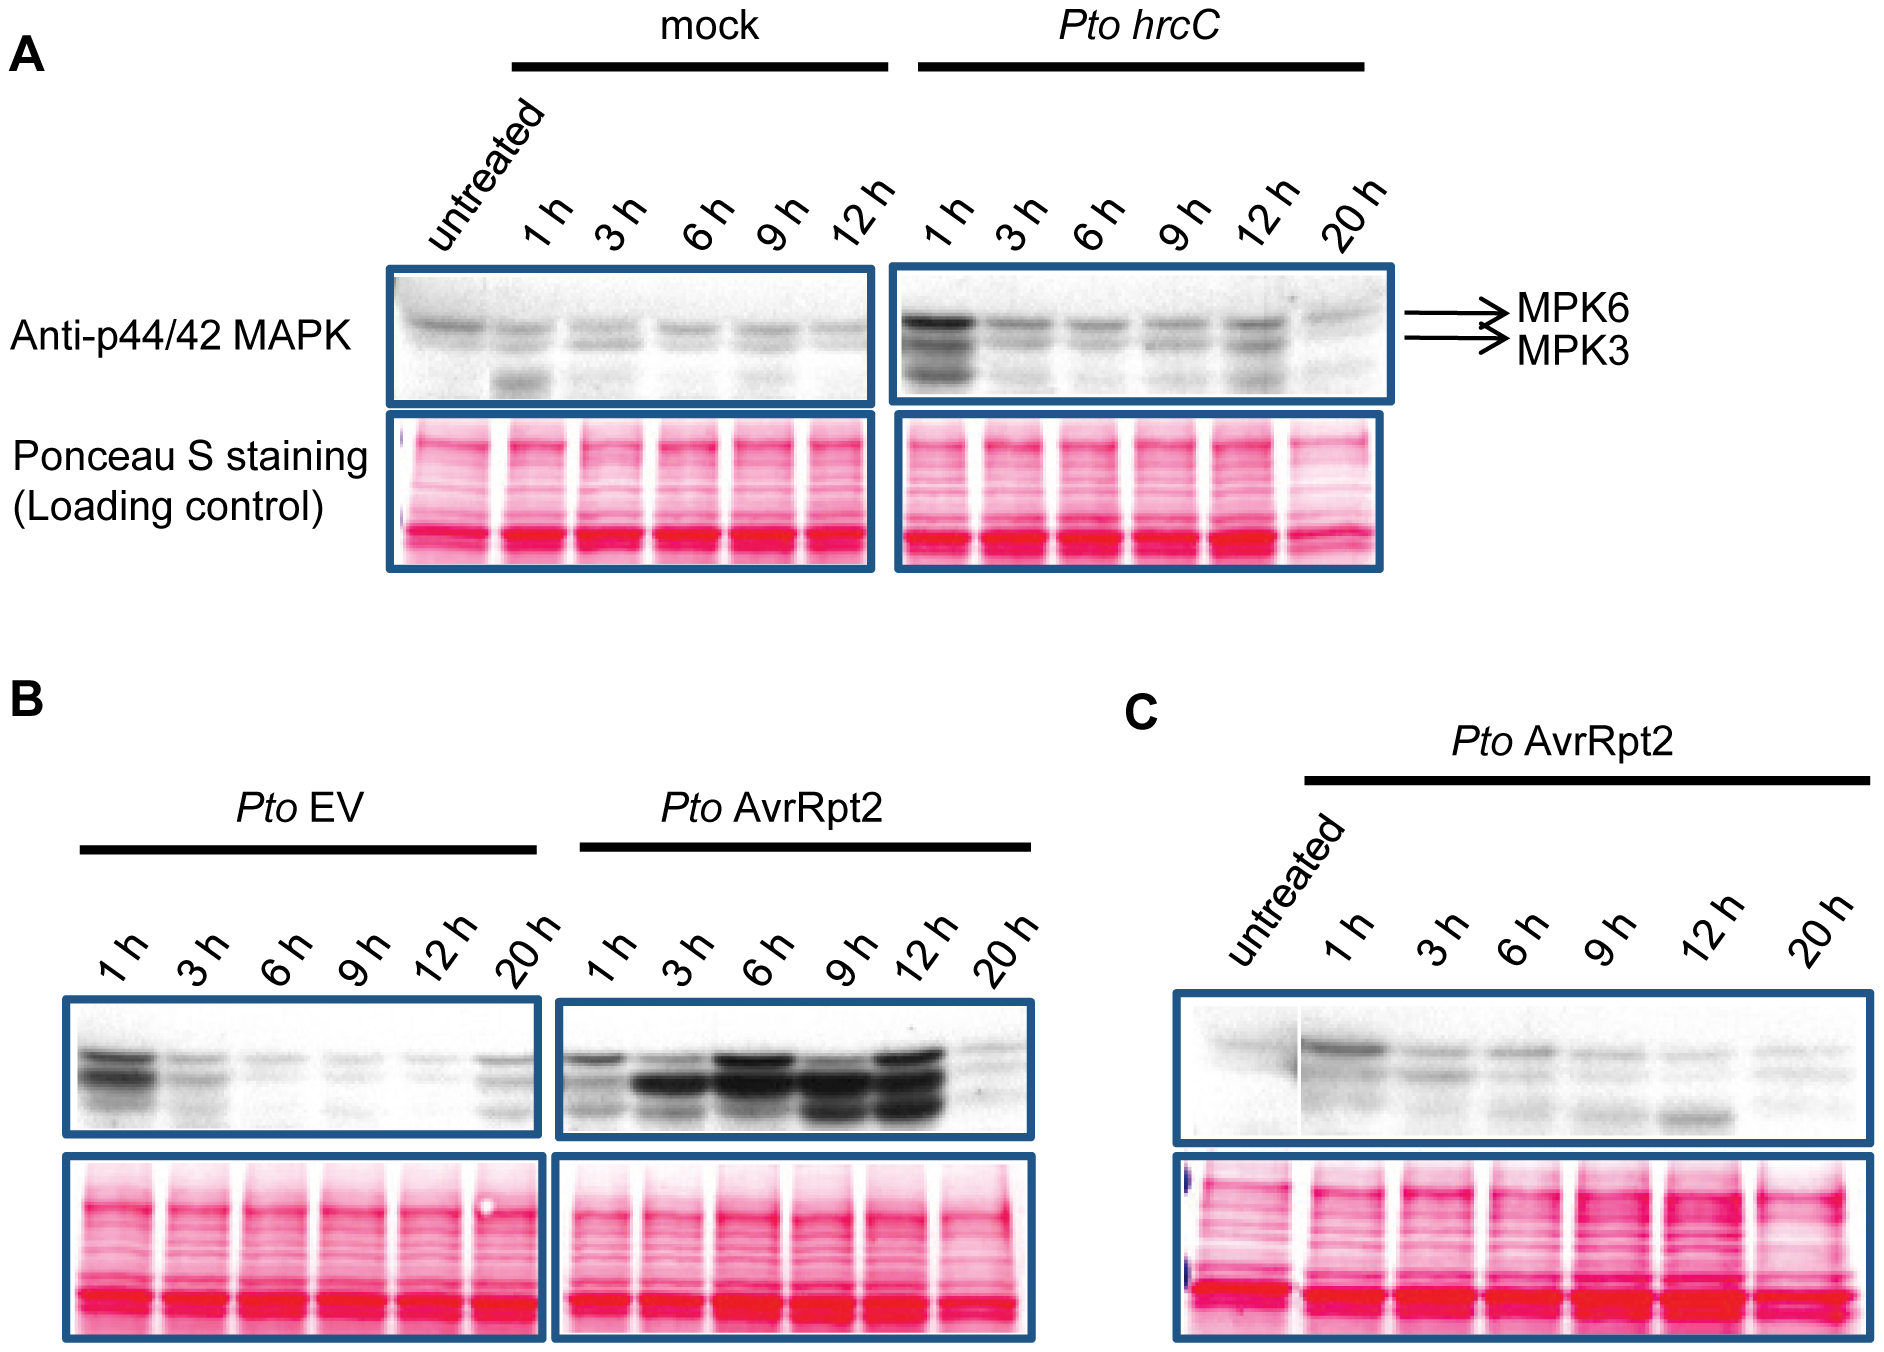 MAPK activation is sustained in ETI but transient in non-ETI conditions.